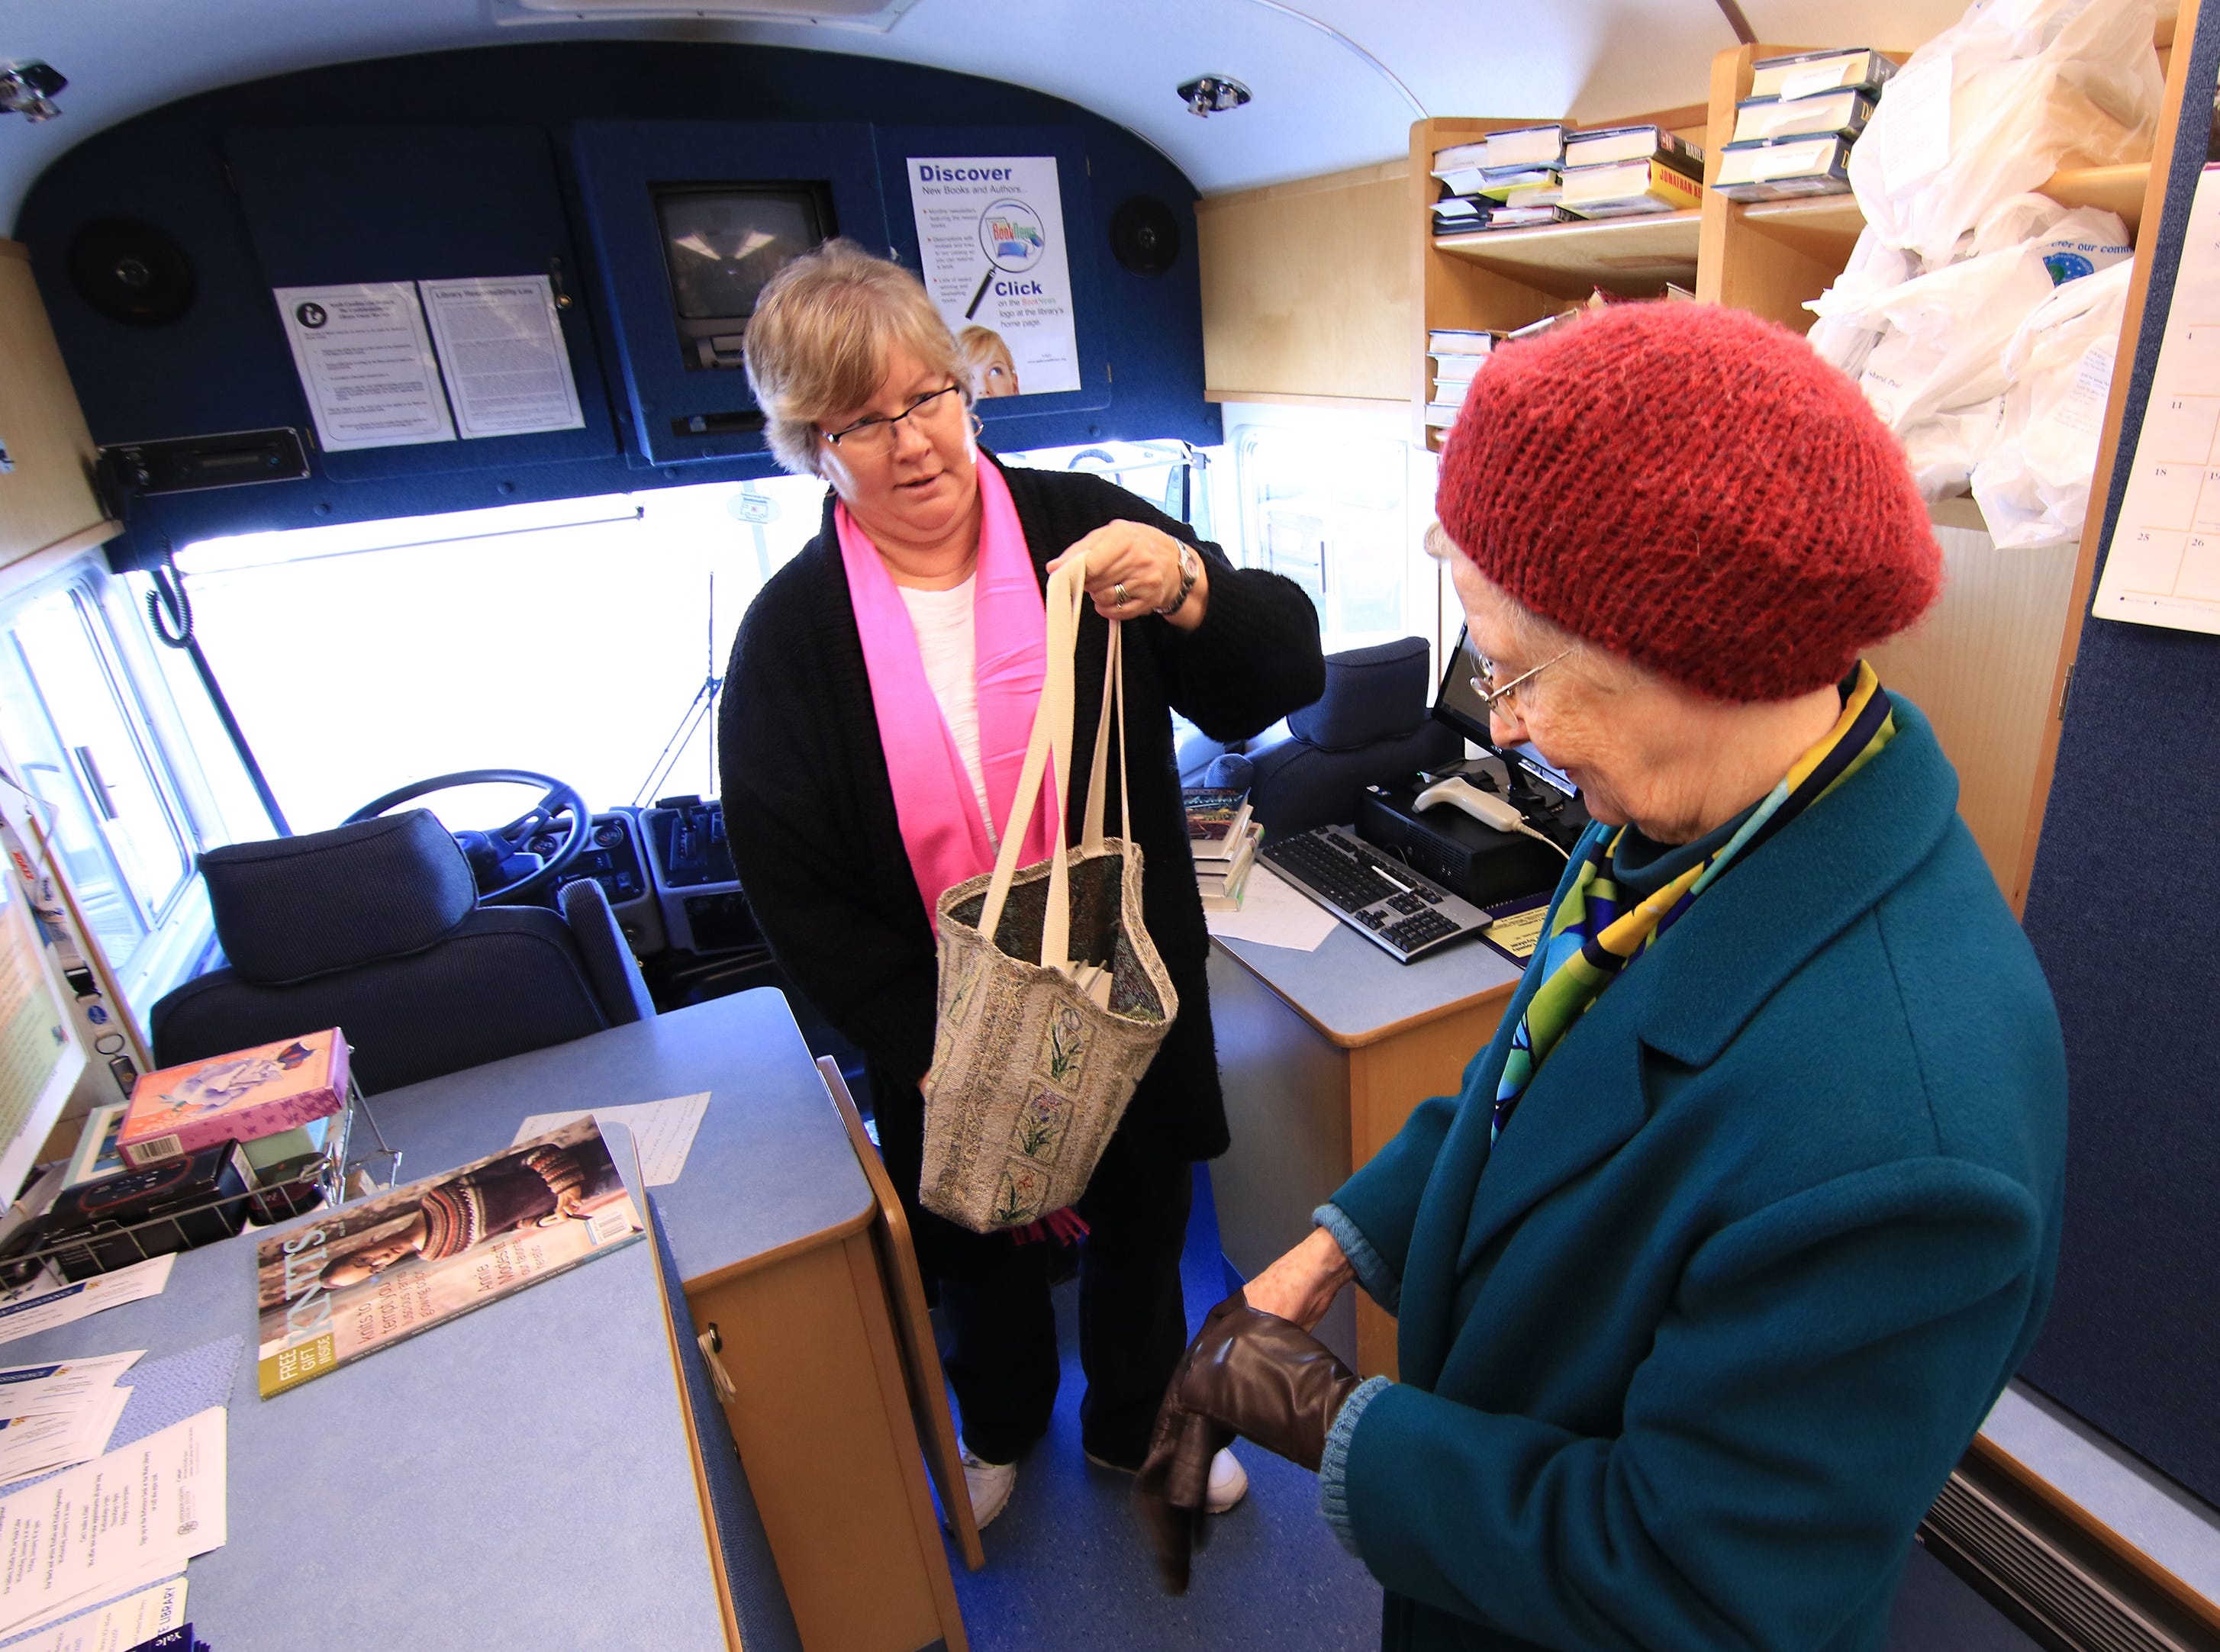 Delores Strickland, left, a librarian assistant for the Anderson County Library Bookmobile, helps B.J. Bare of Anderson with books during her stop at the Richard M. Campbell Veterans Nursing Home in Anderson. Bare said she knows the mobile truck stops in the parking lot at the home, a convenience she likes in 2015.